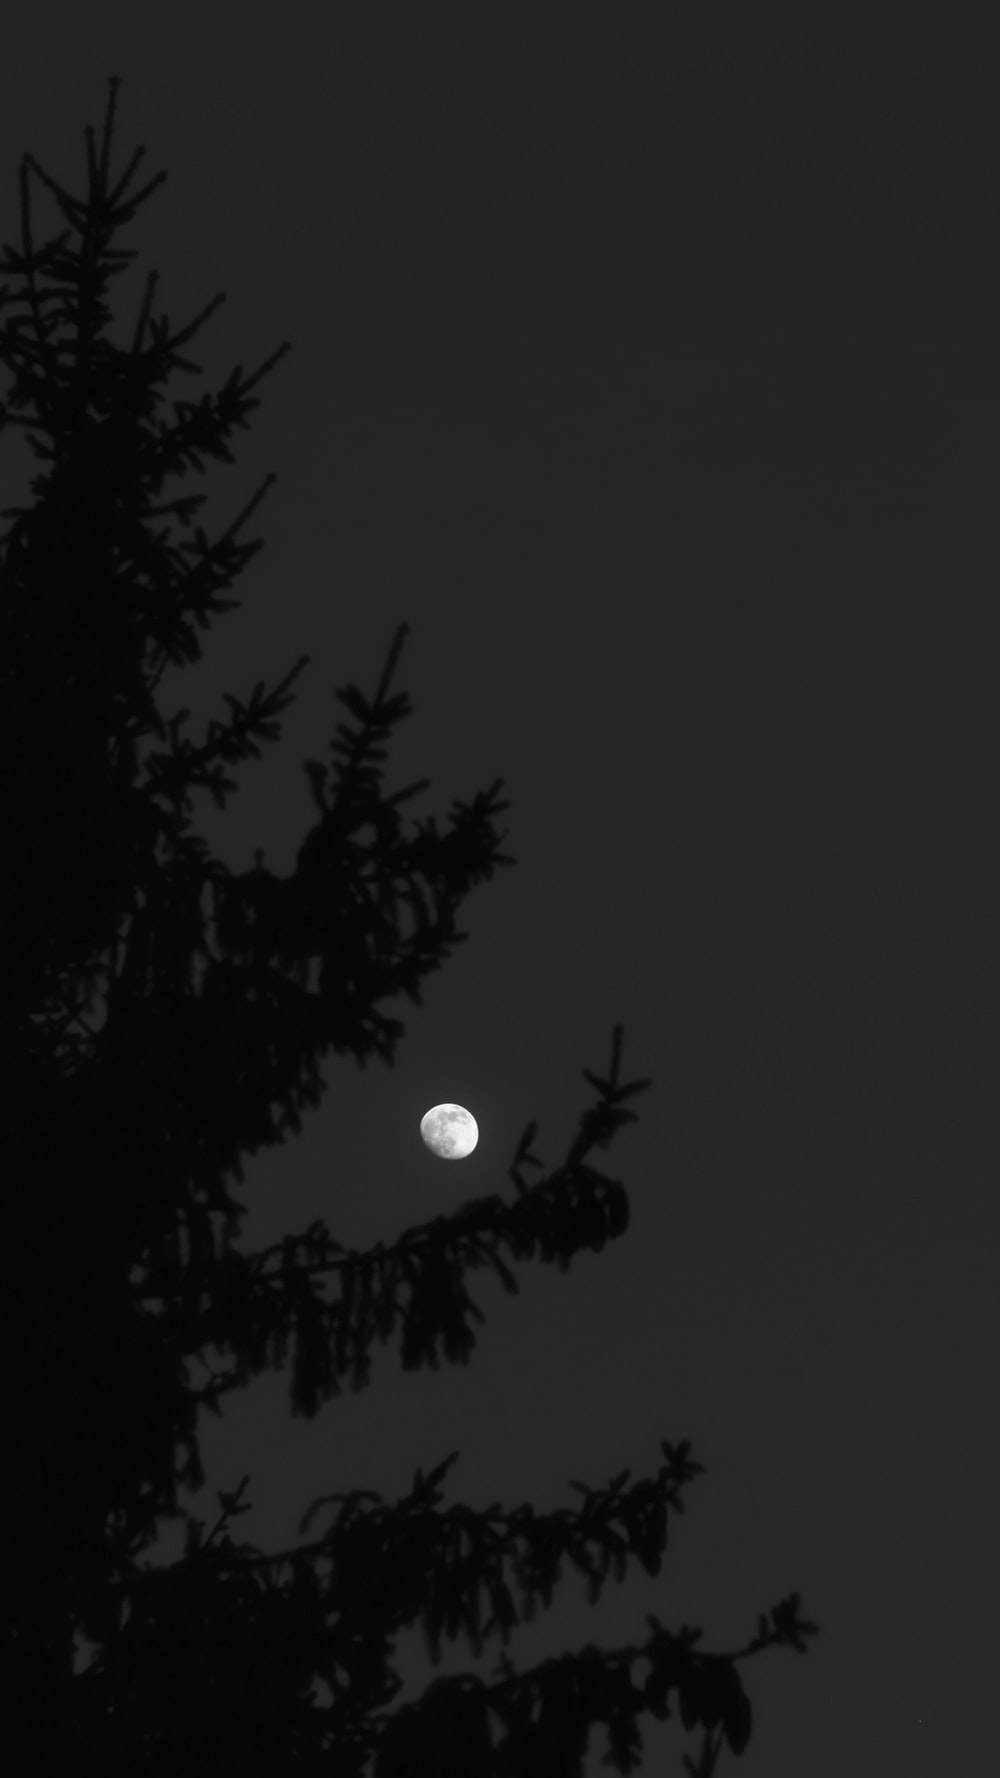 full moon over trees during night time